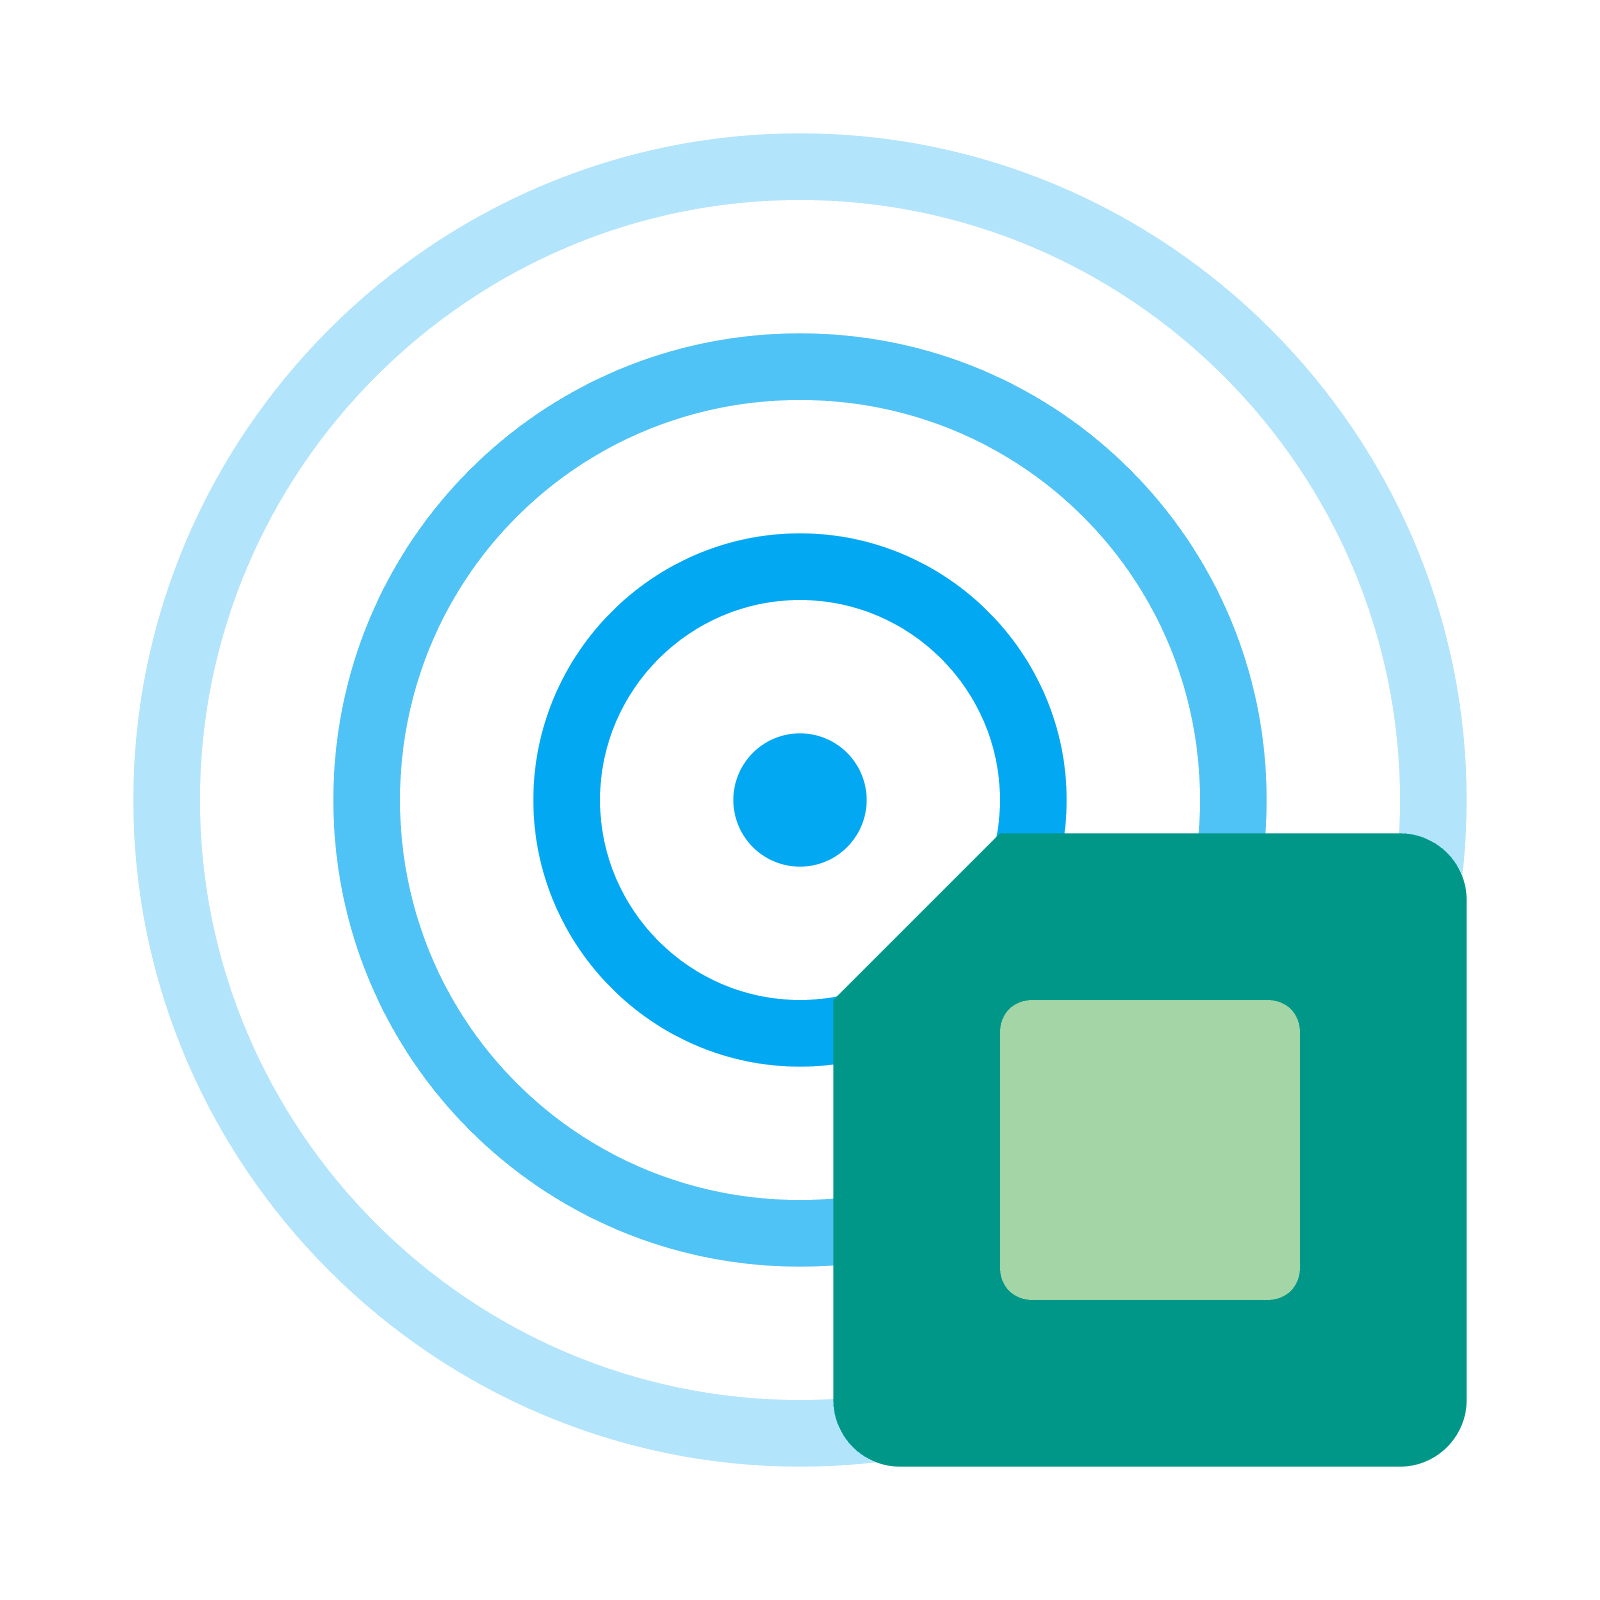 kisspng-radio-frequency-identification-computer-icons-tran-5b29ef6a3bb829.4437446315294749222446.png